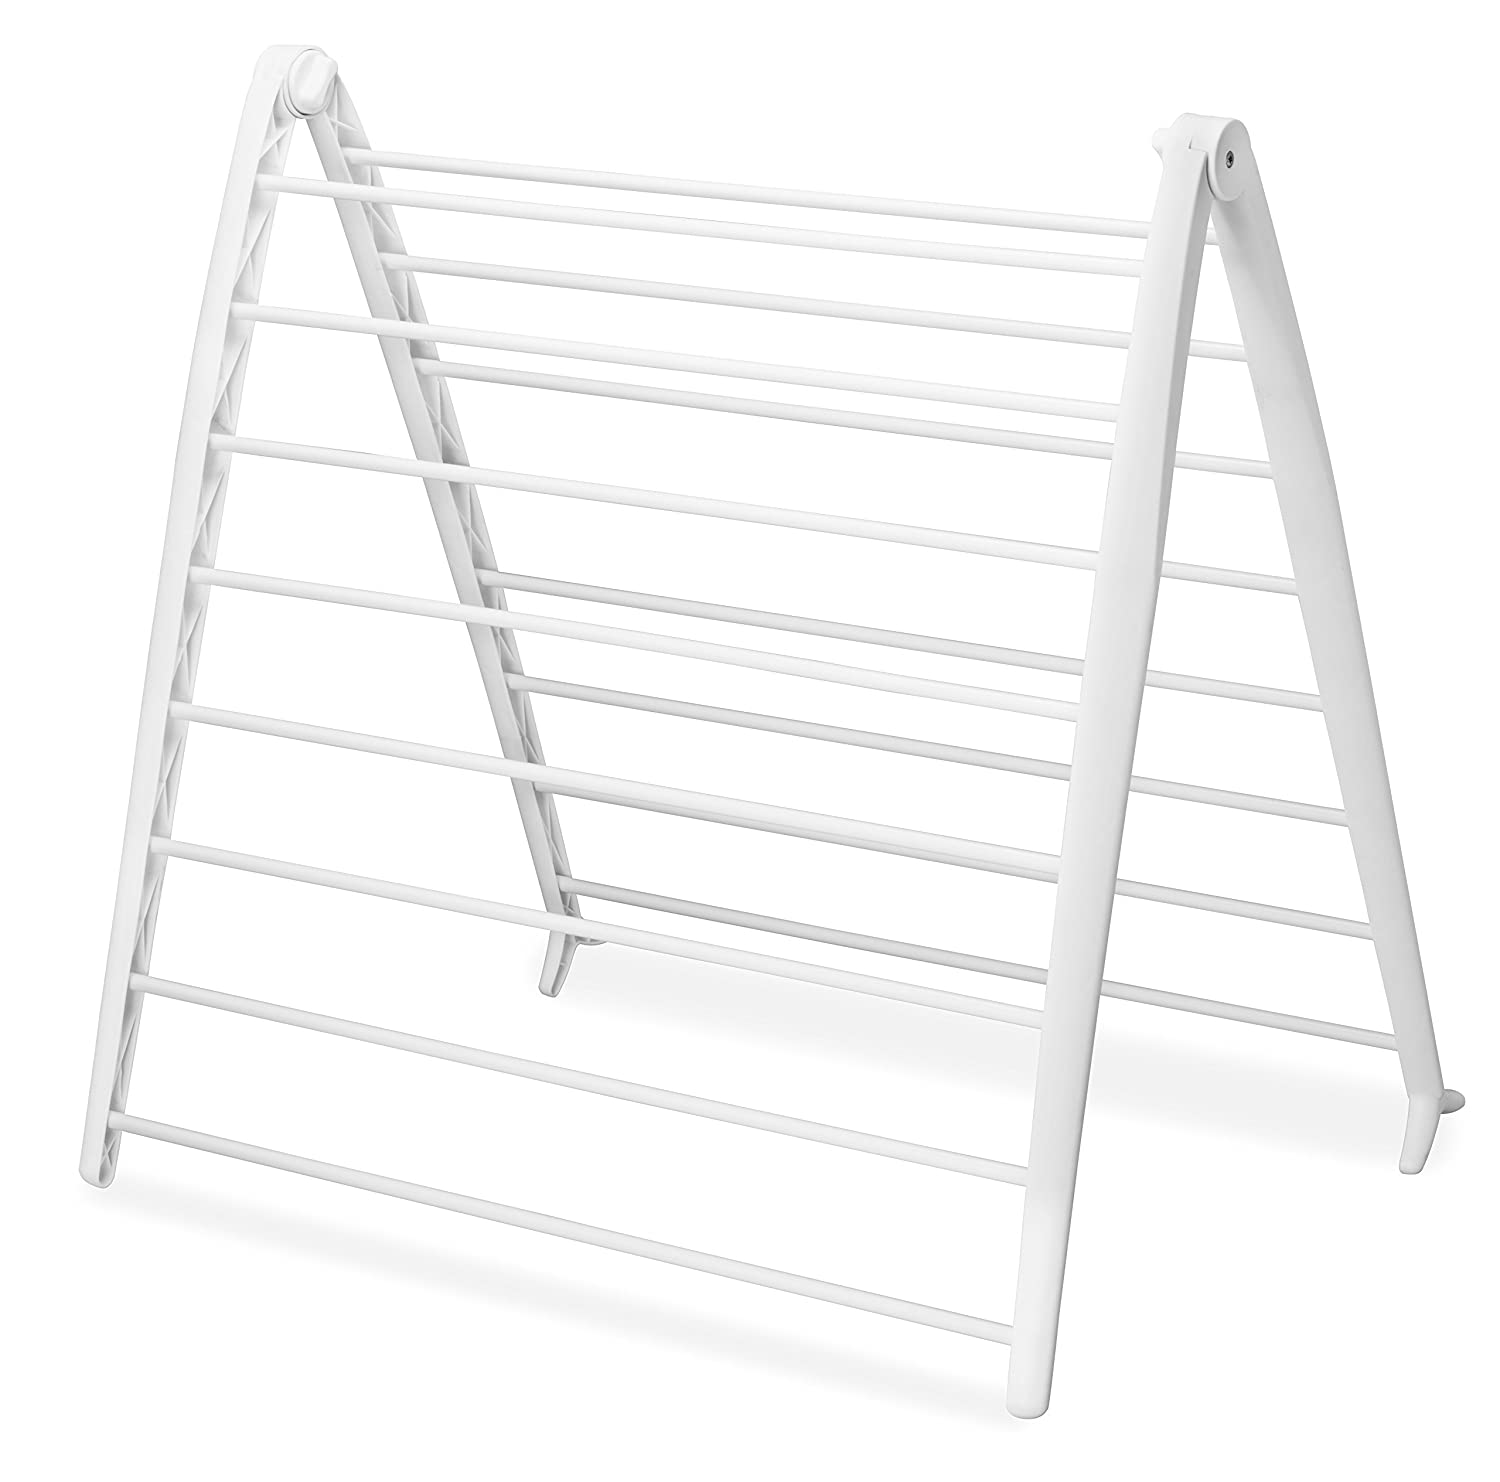 Whitmor Drying Rack, Collapsible, White 6036-5924